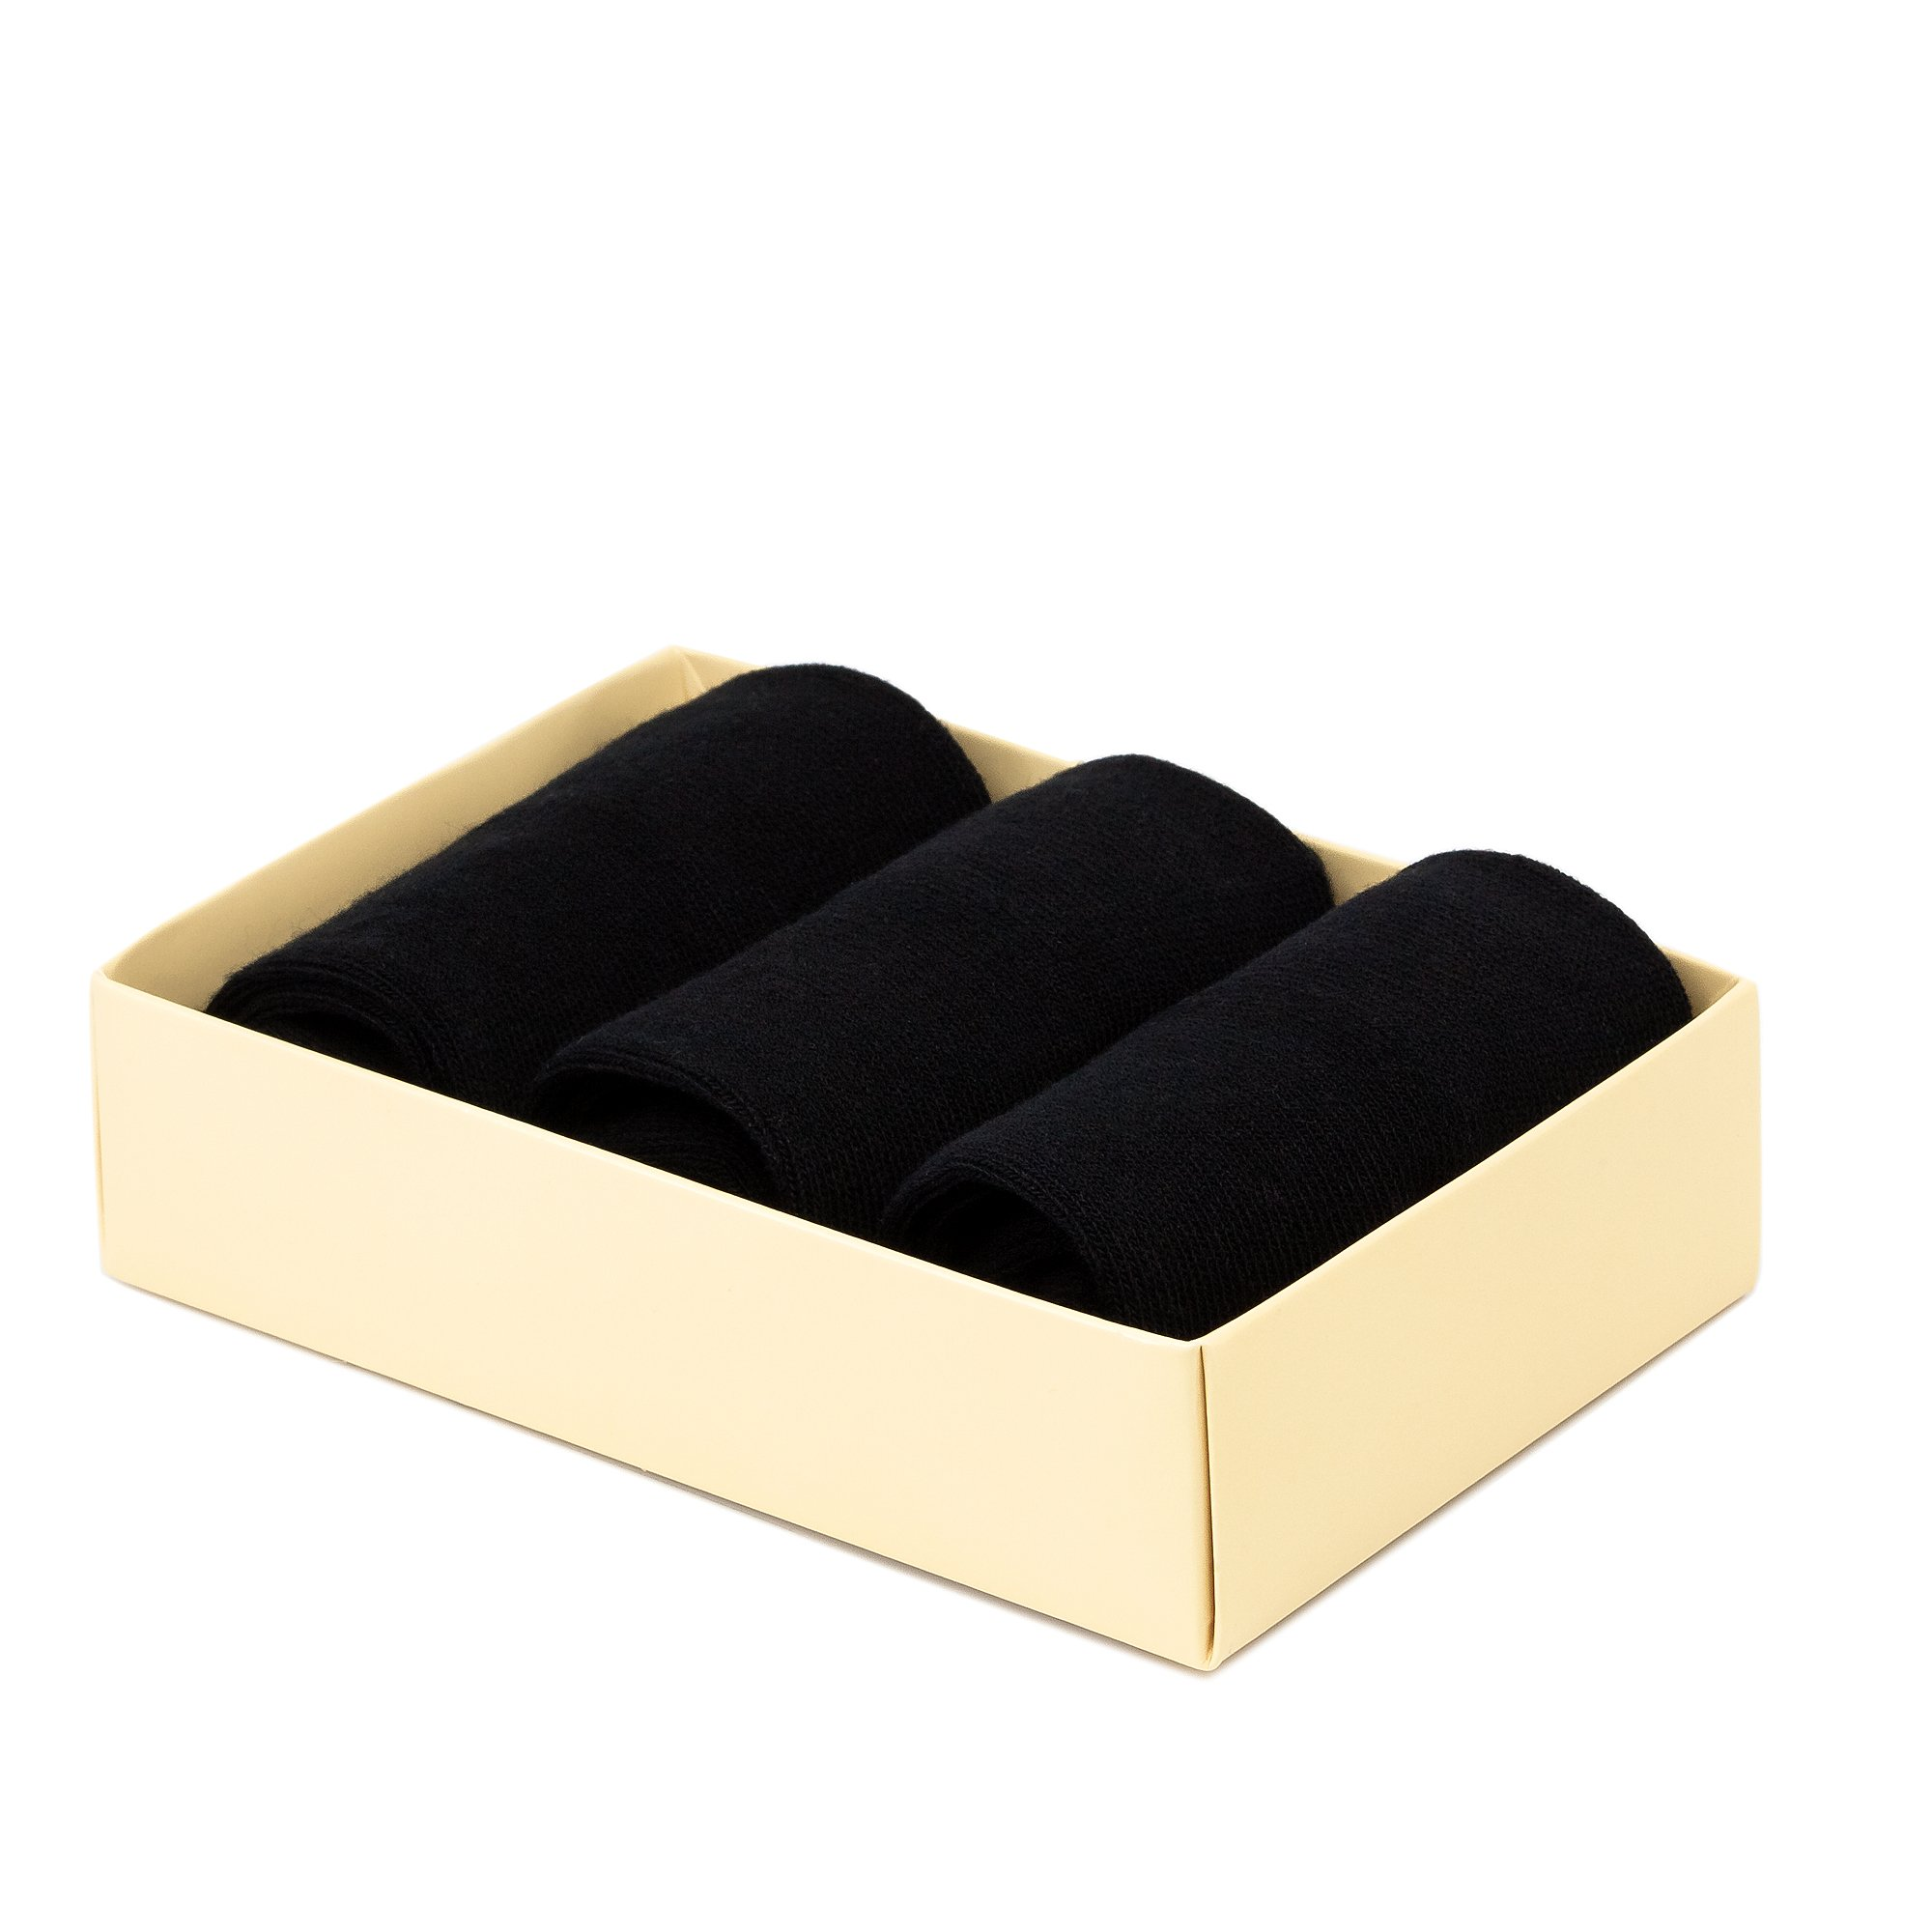 Women's Low Cut Socks, 3 Pairs Pack. Seamless Fit, Fine Combed Cotton, Reinforced Sole by iNicety (Image #3)